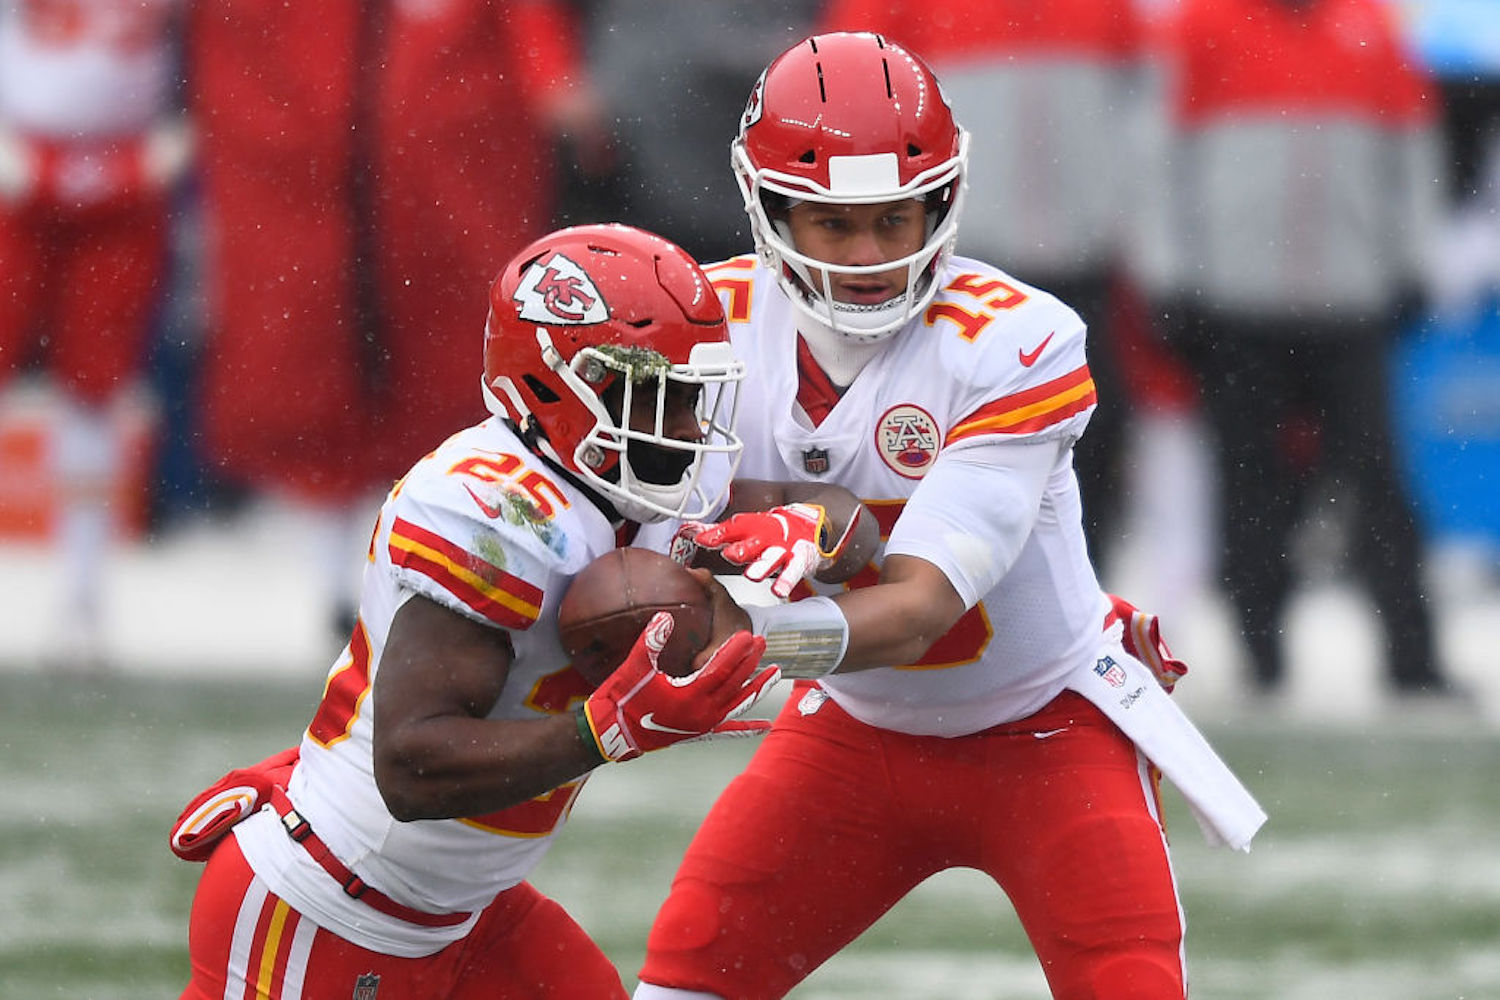 Clyde Edwards-Helaire has been the most explosive running back for the Chiefs all season, but he's now unlikely to suit up Sunday.